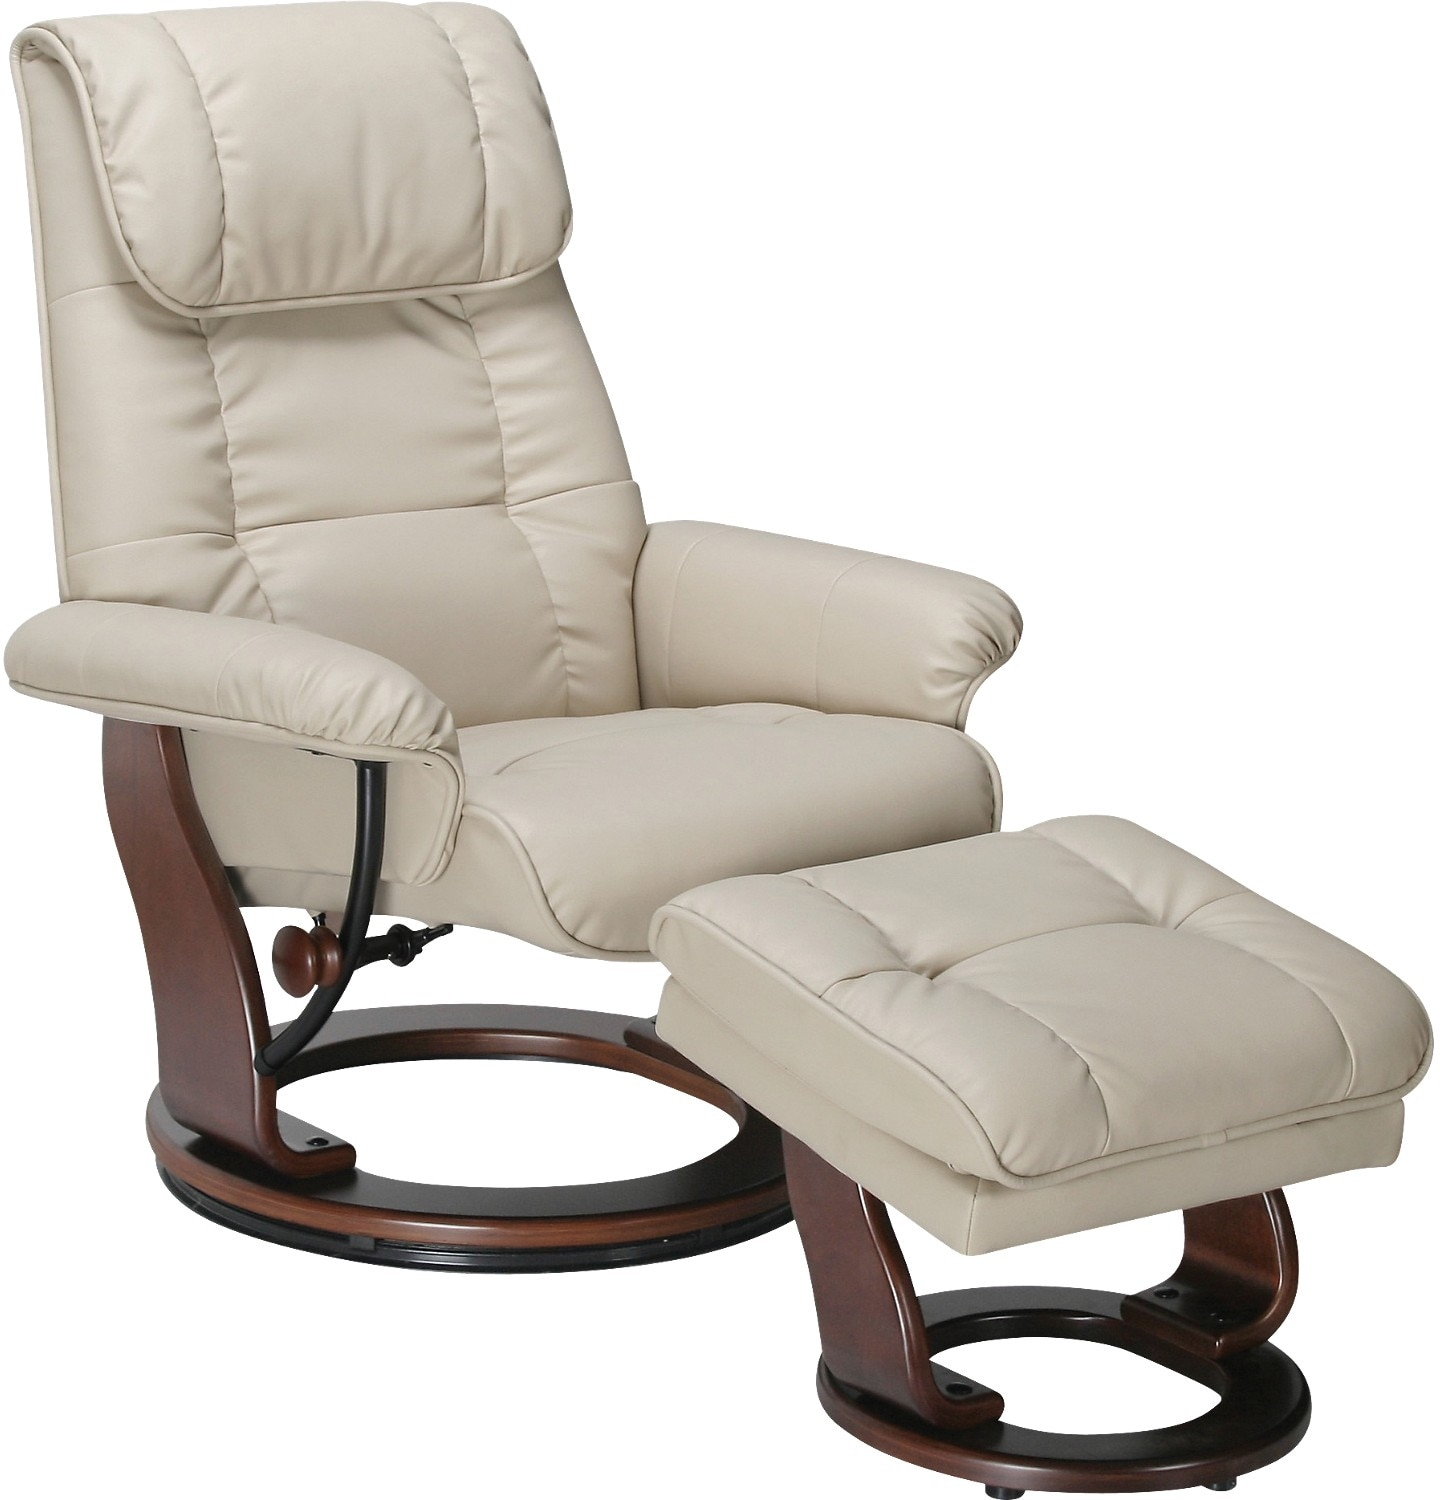 Dixon Taupe Reclining Chair Amp Ottoman The Brick